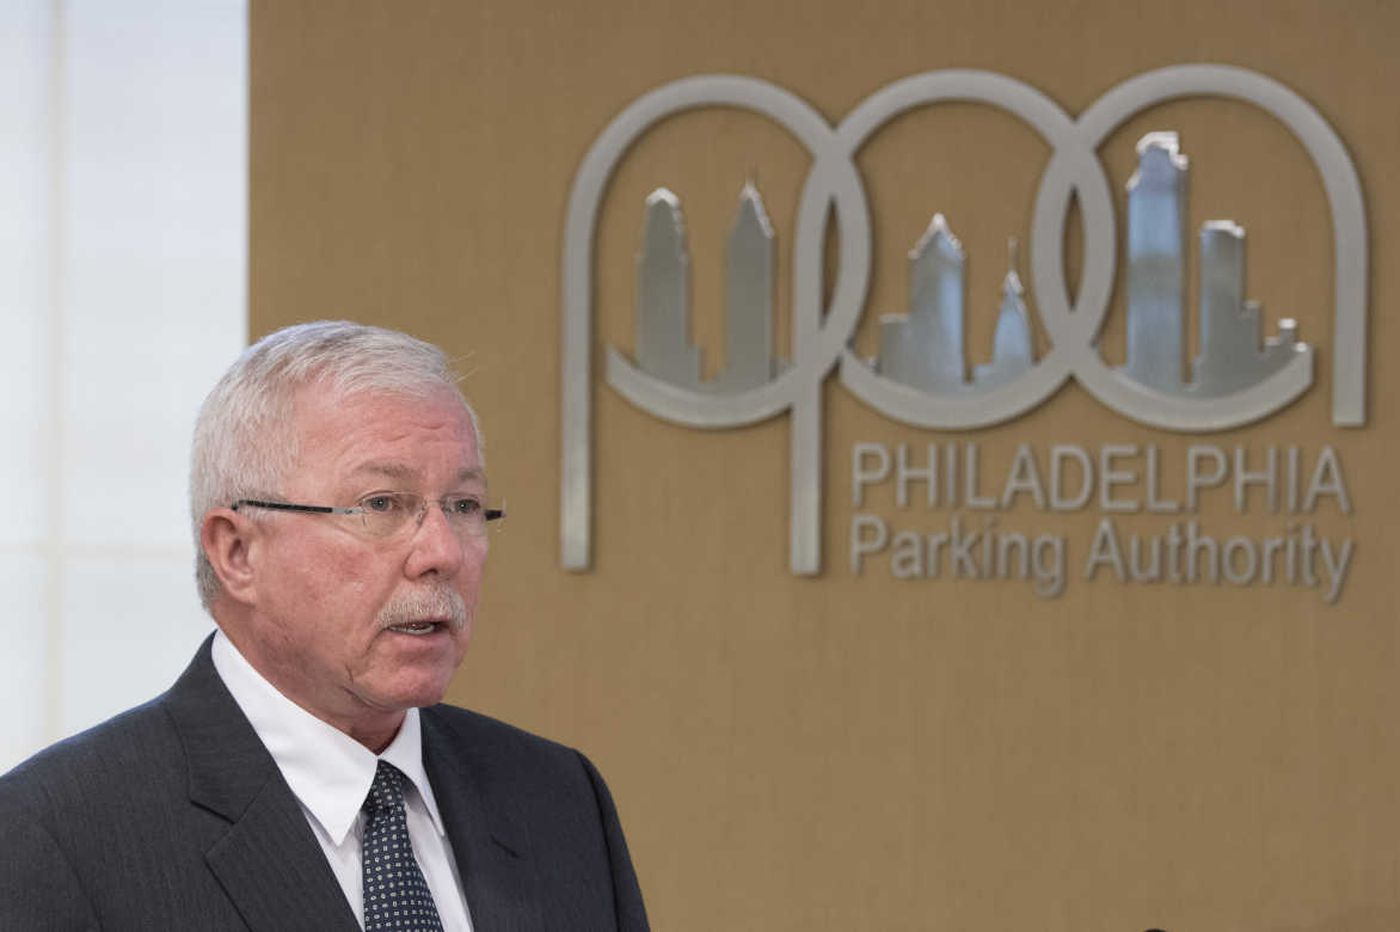 Commentary: On parking and more, PPA due for an overhaul